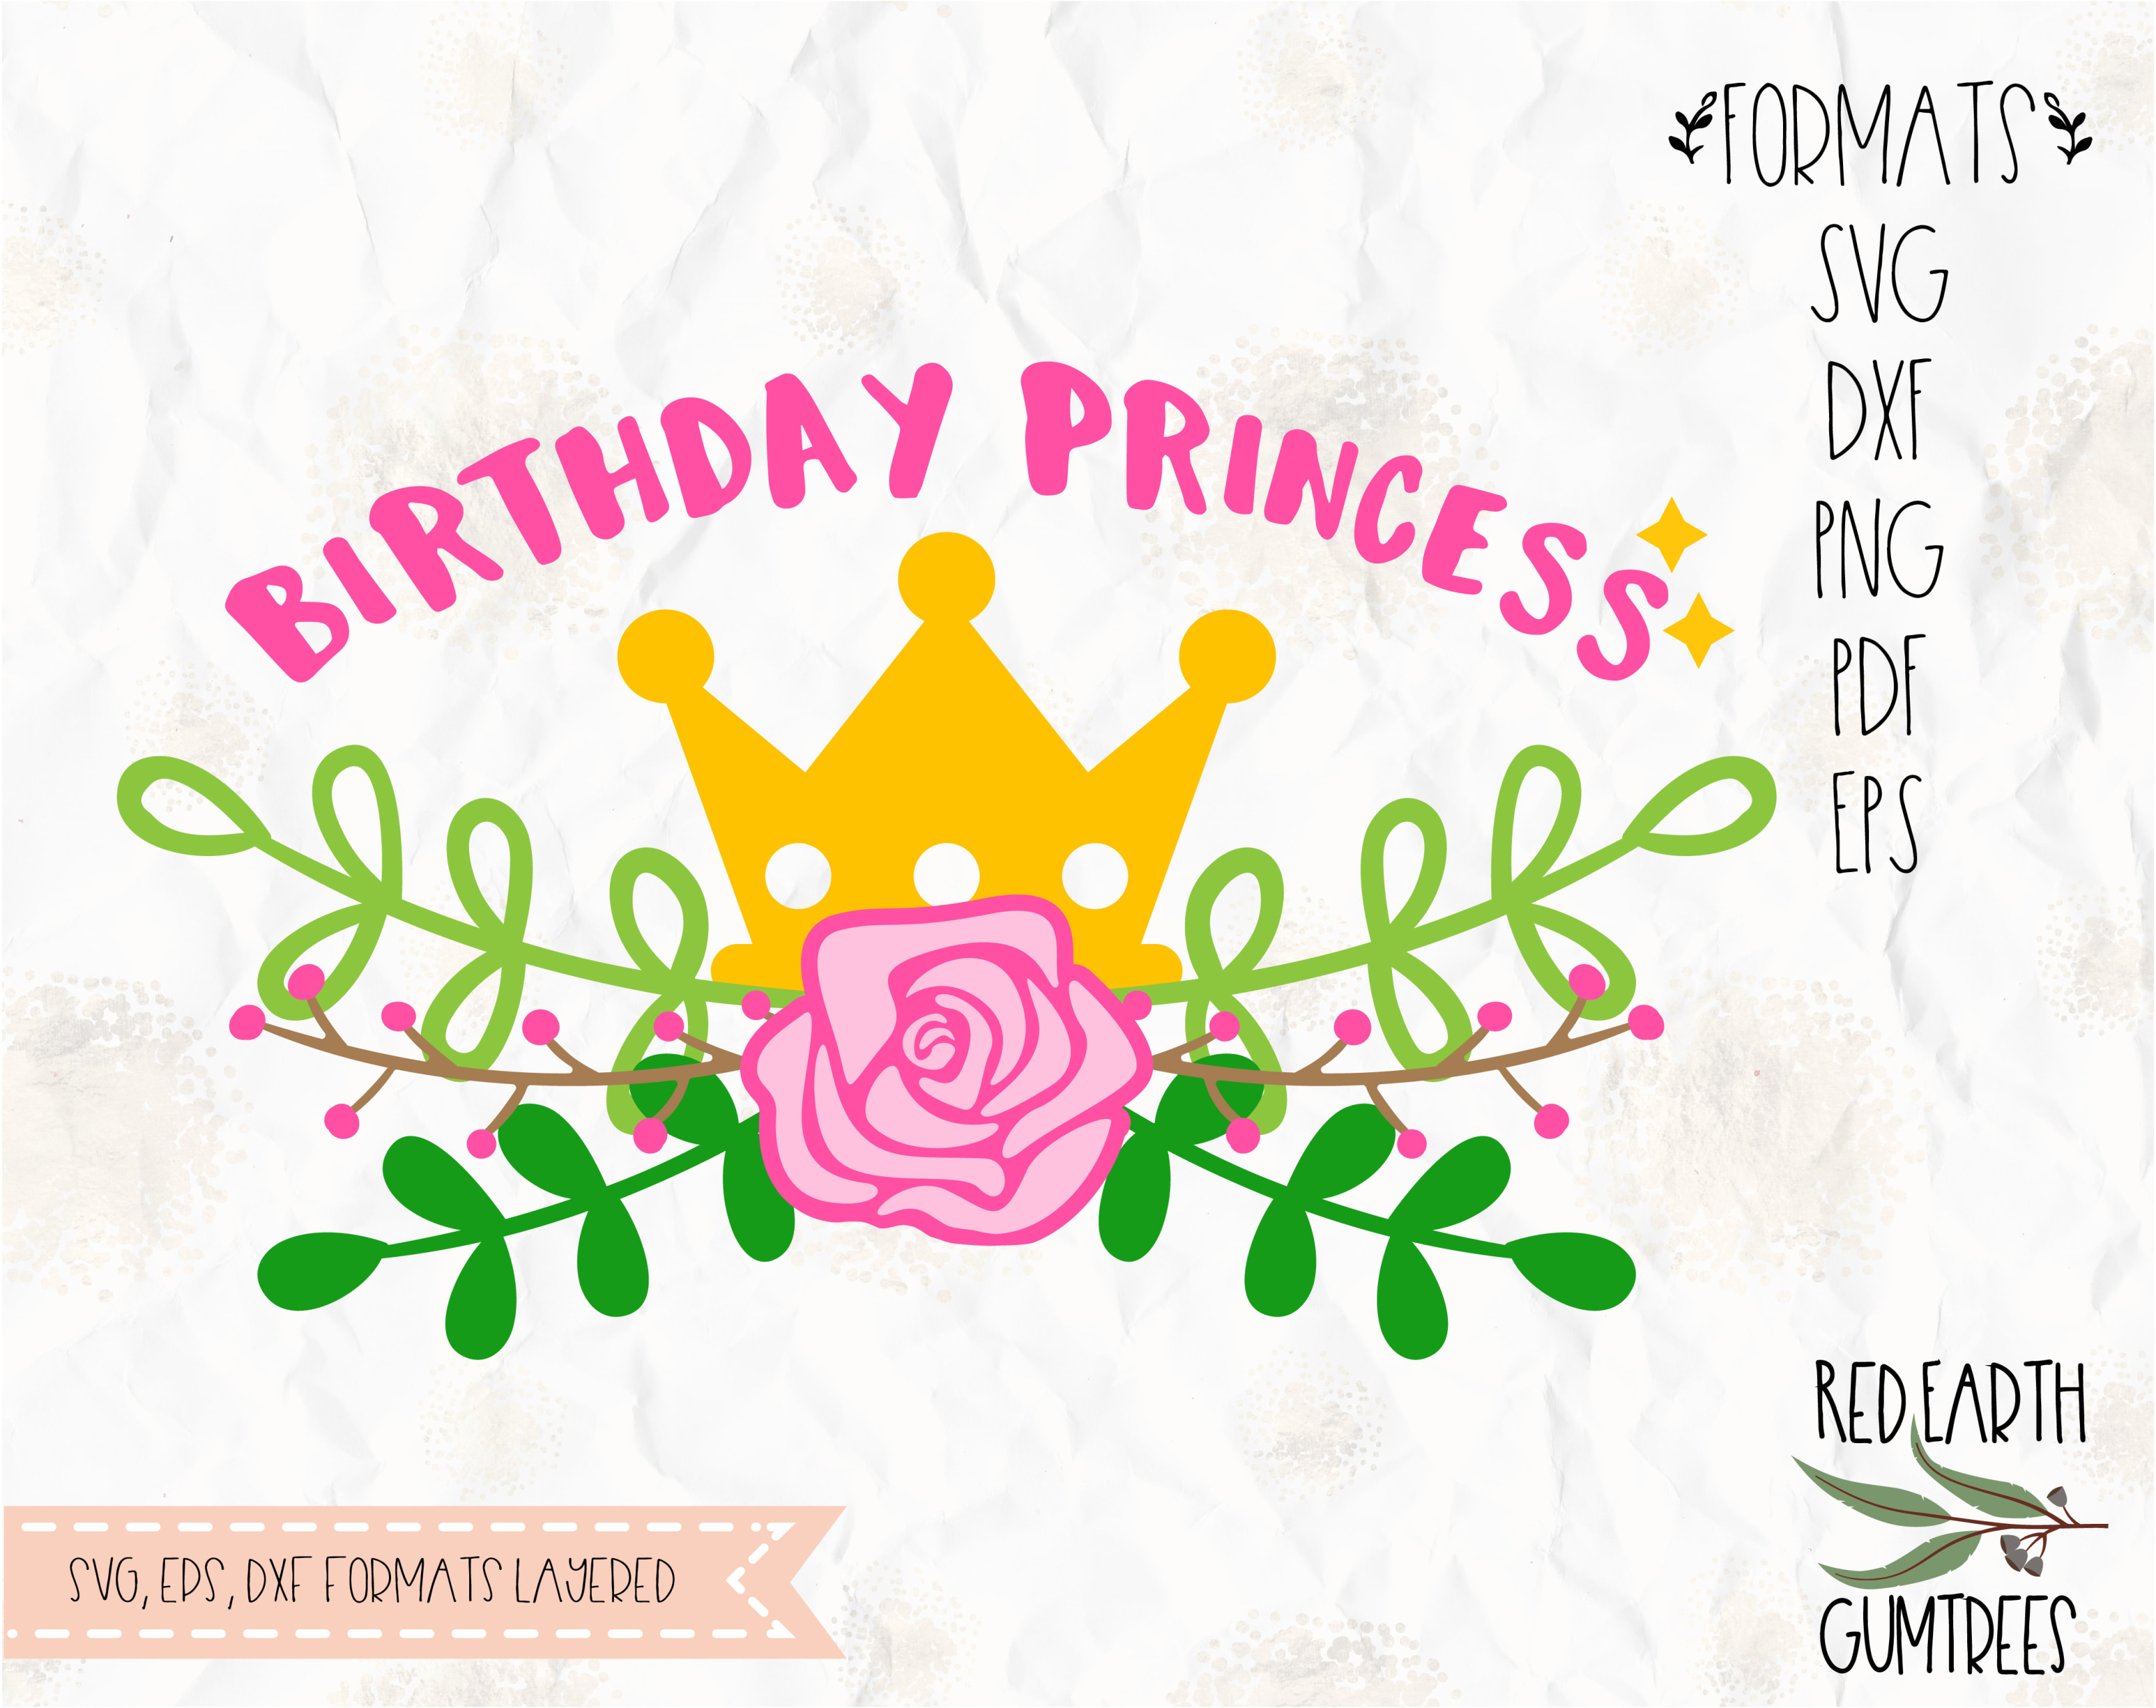 Birthday princess crown with flowers in svg eps pdf dxf png birthday princess crown with flowers in svg eps pdf dxf png formats crown with rose and green leaves cricut silhouette cameo vinyl decal izmirmasajfo